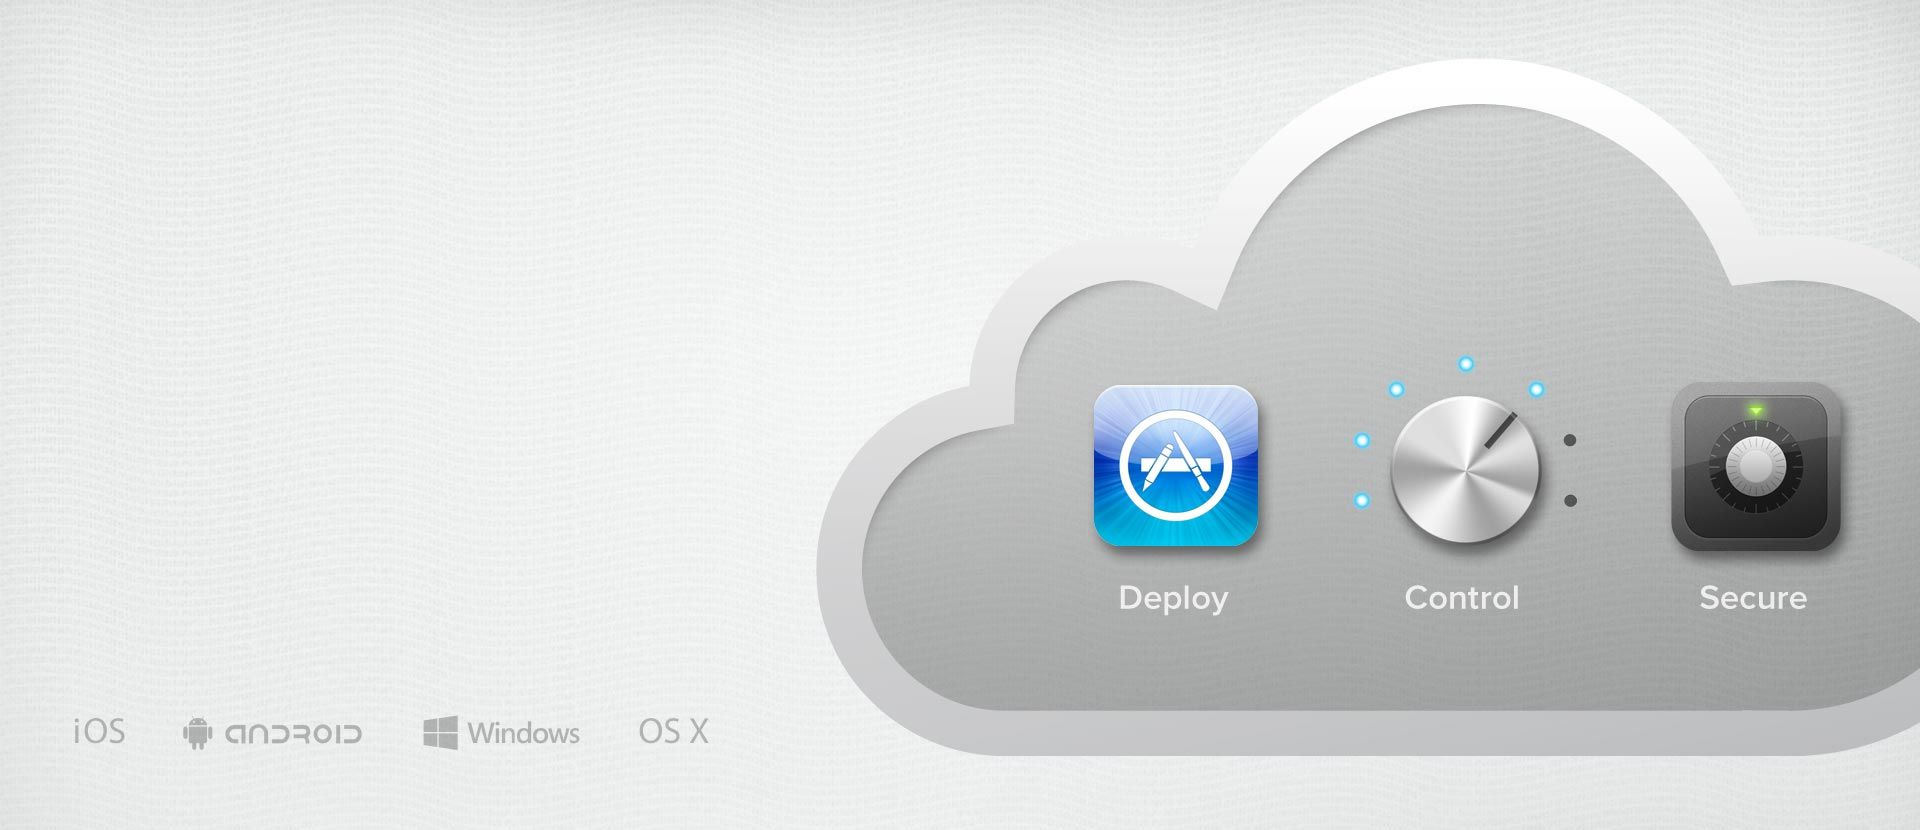 Manage mobile devices (MDM) from the cloud  100% Free for